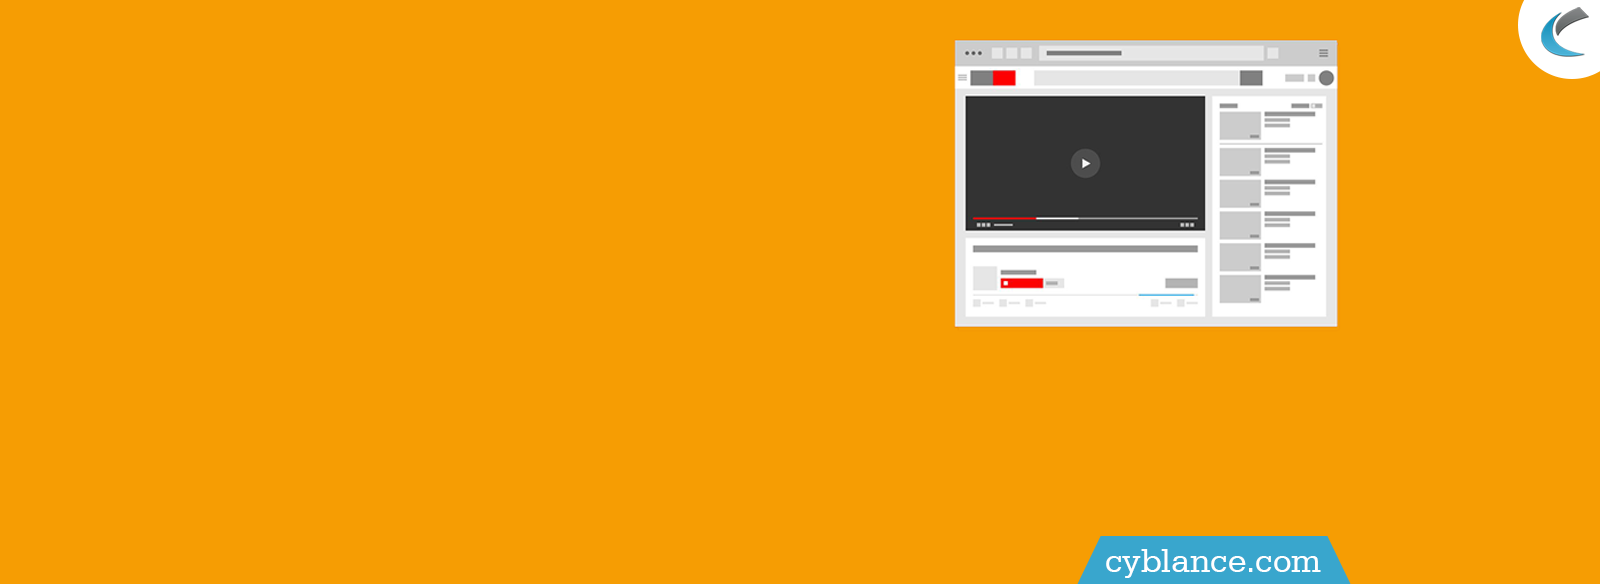 How to create a website like YouTube fast and affordable way?